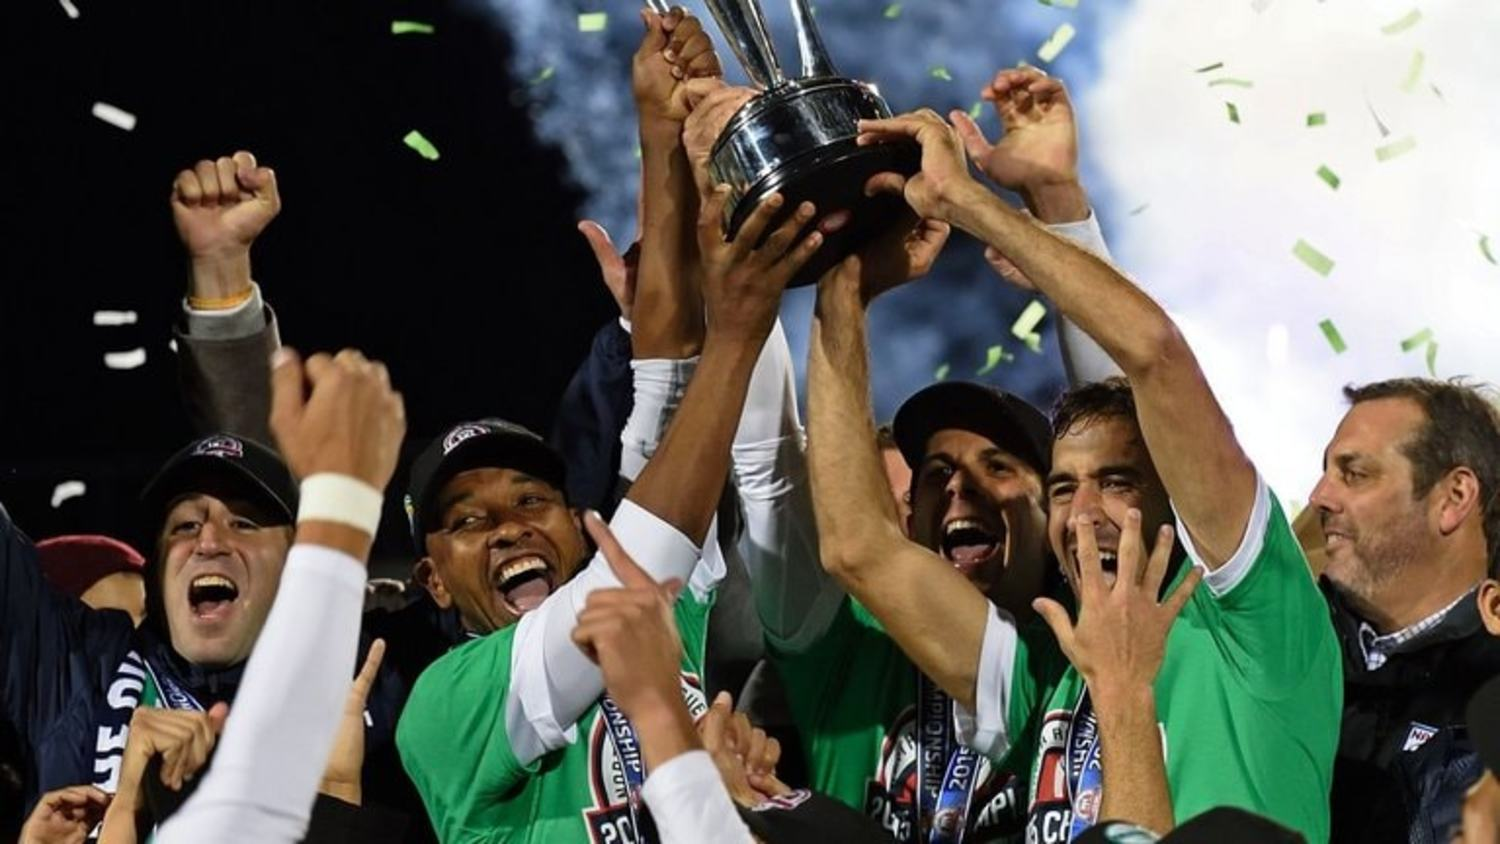 NASL 2017: Get To Know The Clubs